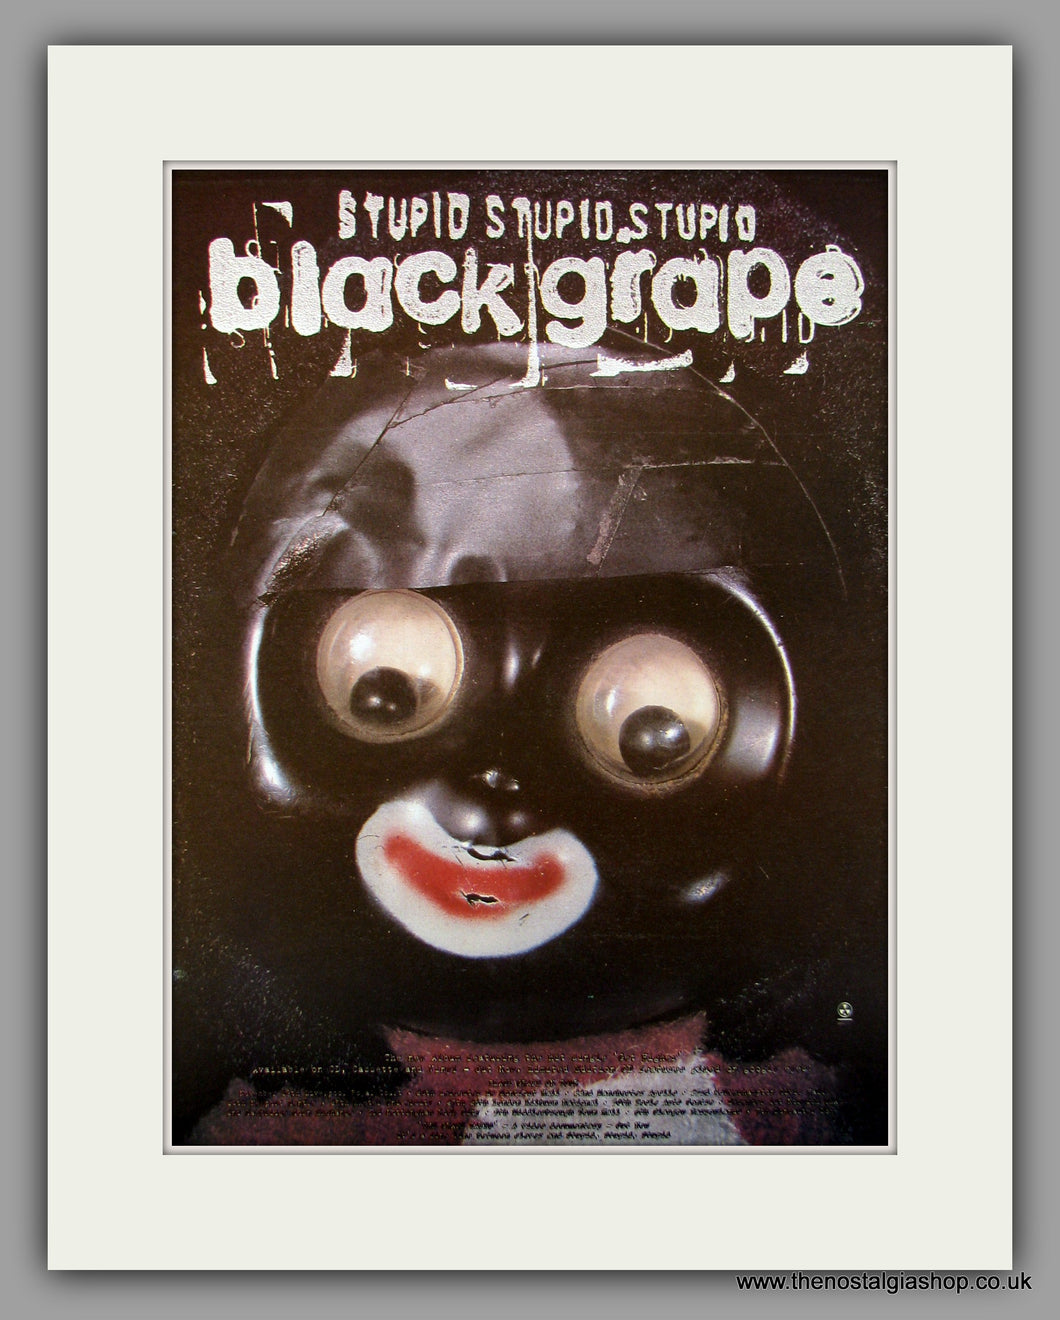 Black Grape Stupid Stupid Stupid.  Original Vintage Advert 1997 (ref AD10161)